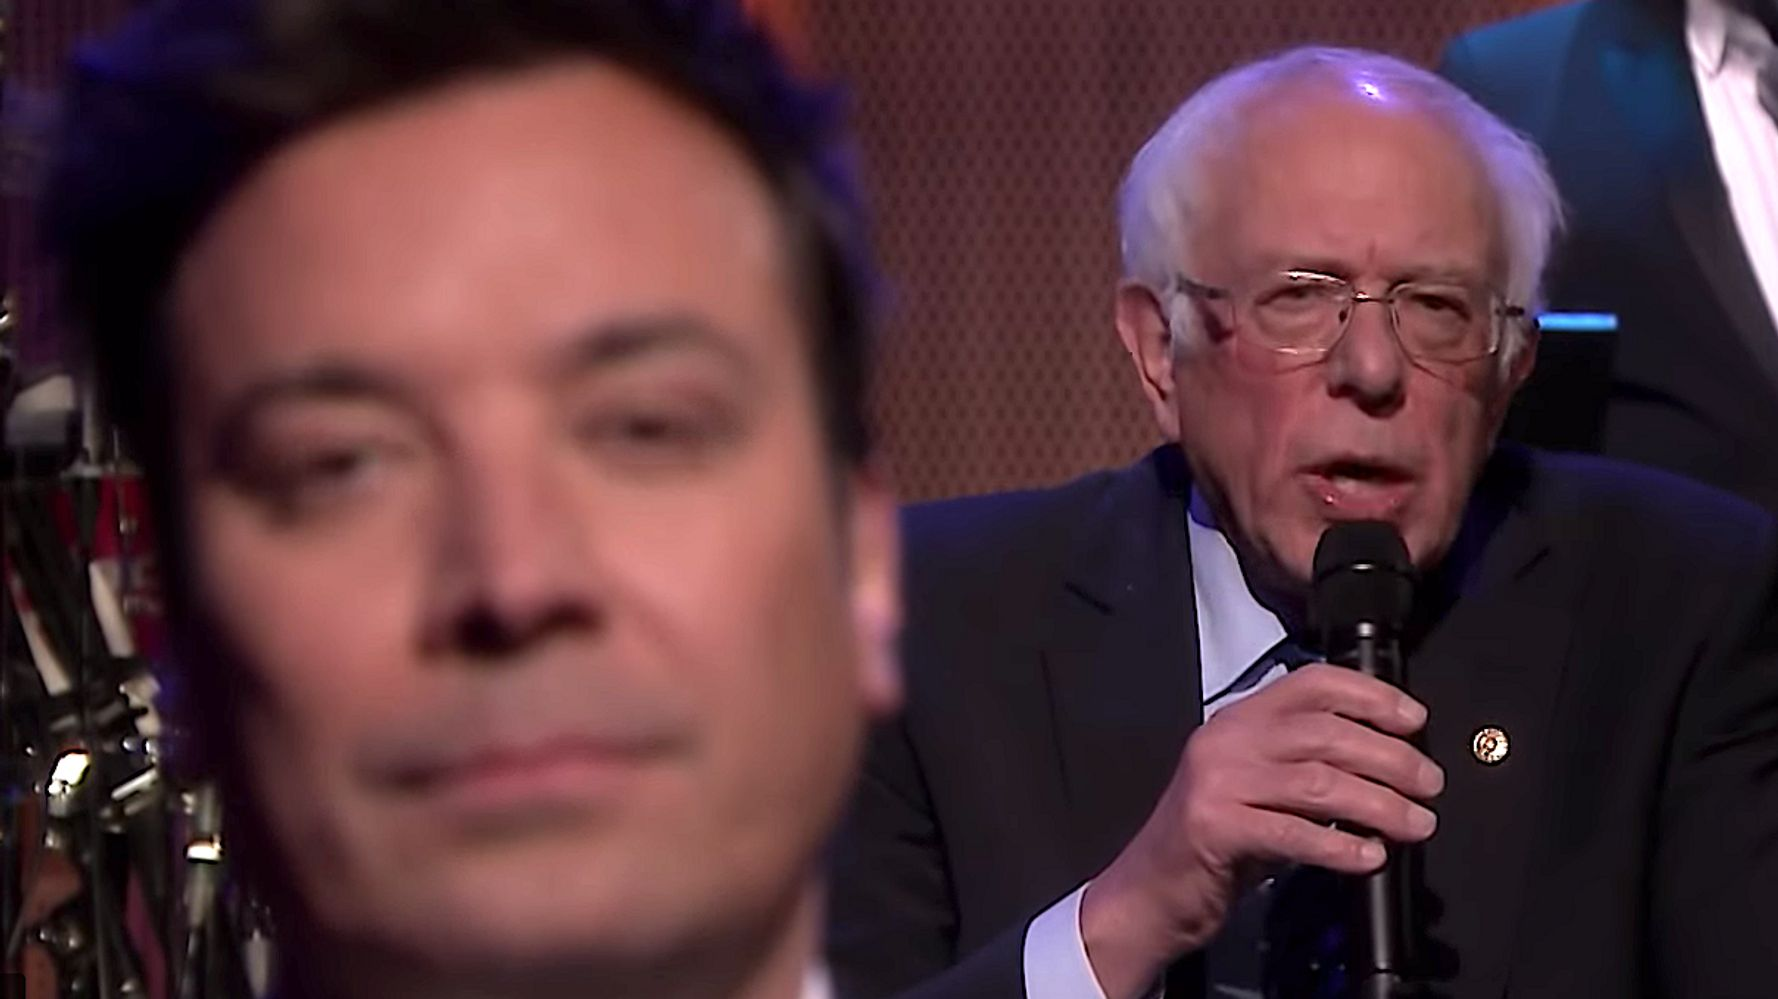 Westlake Legal Group 5dde51512100007f7e34e357 Bernie Sanders Channels Lizzo To 'Slow Jam The News' With Jimmy Fallon